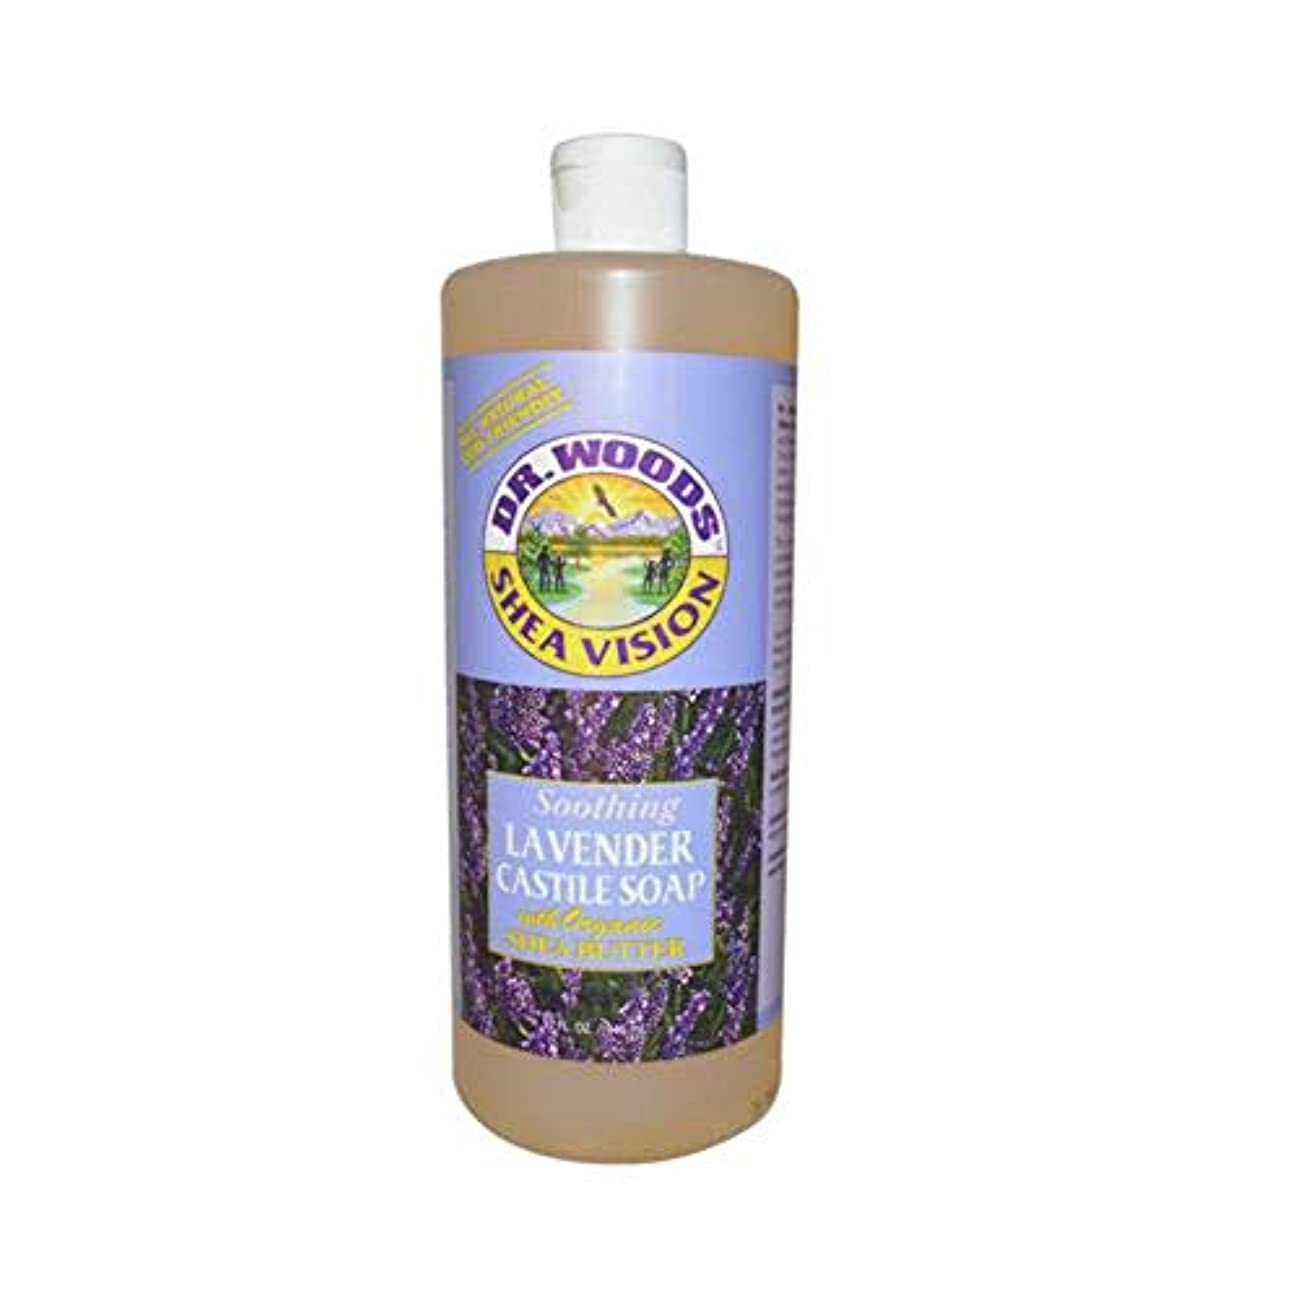 シュリンク石炭尽きるDr. Woods, Shea Vision, Soothing Lavender Castile Soap, 32 fl oz (946 ml)